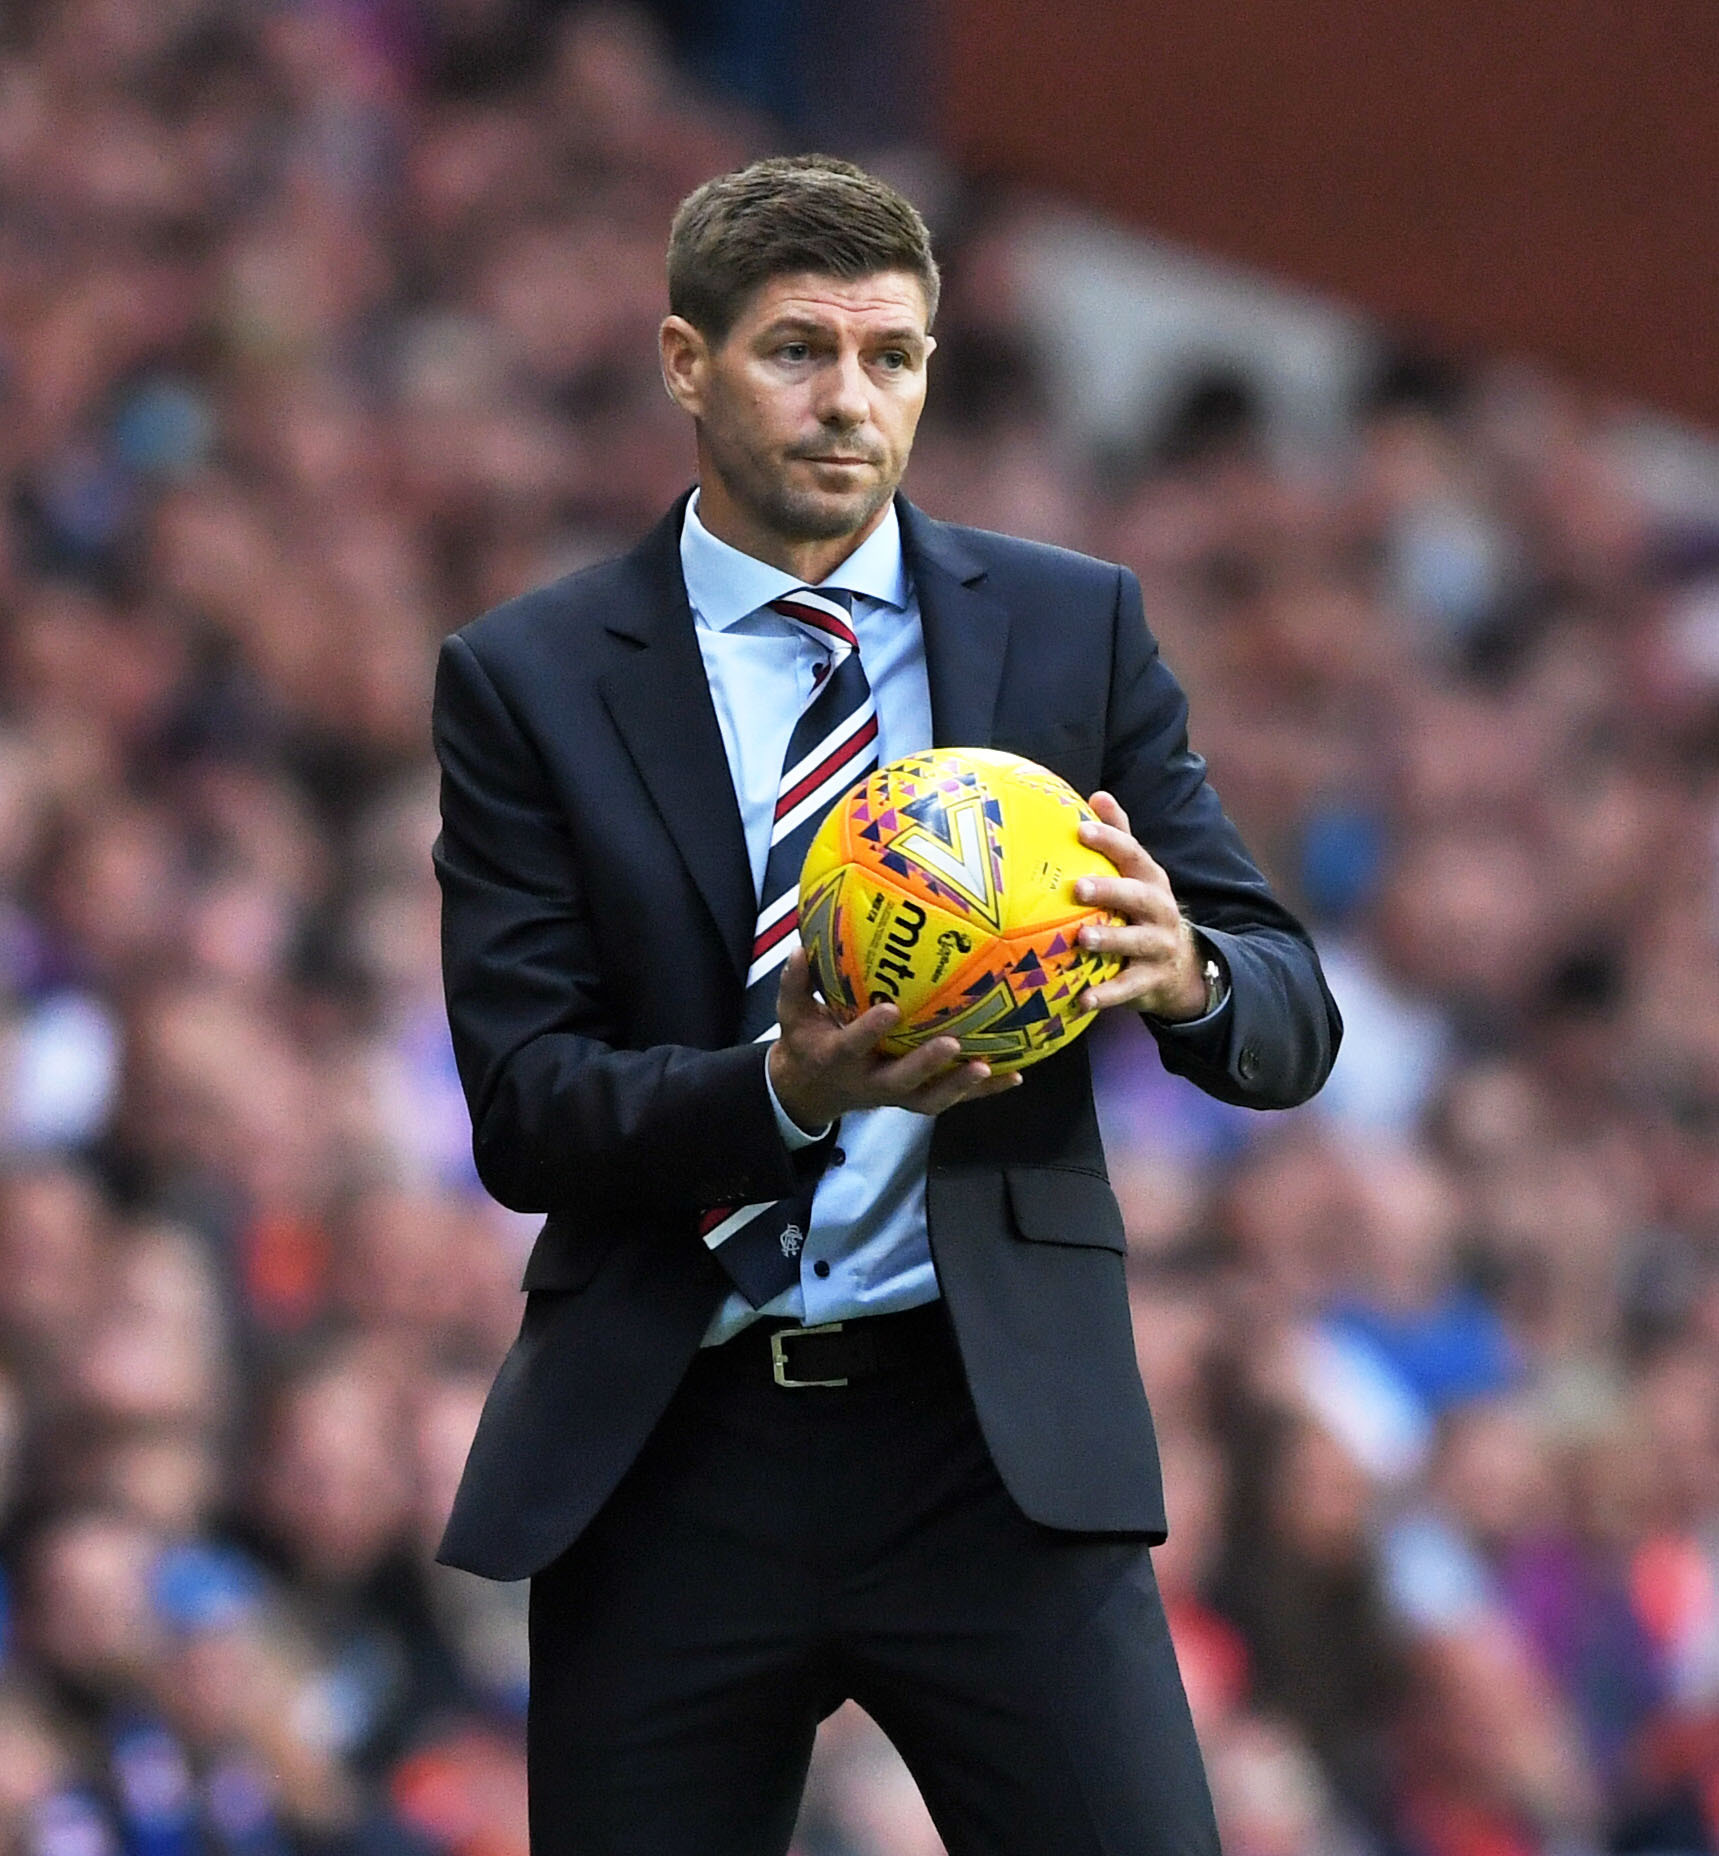 12/07/18 UEFA EUROPA LEAGUE FIRST QUALIFYING ROUND 1st LEG. RANGERS v FK SHKUPI . IBROX - GLASGOW. Rangers manager Steven Gerrard on the touchline..